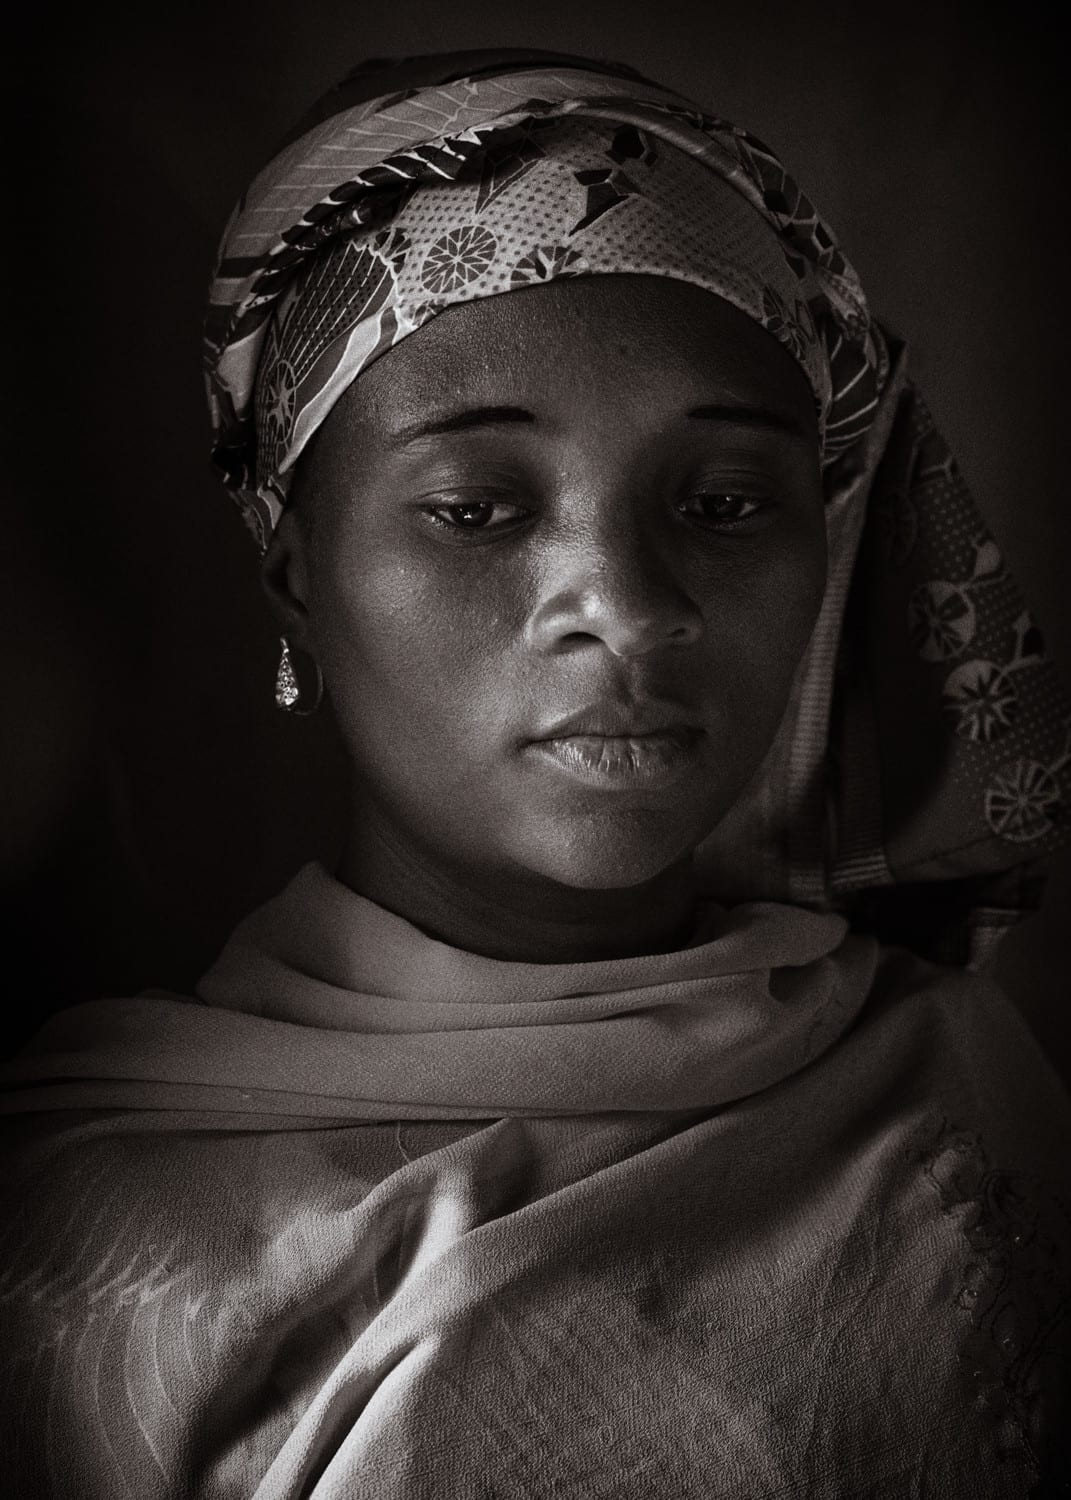 From today, a natural light portrait of a bride from the town of Lapai in Niger state.